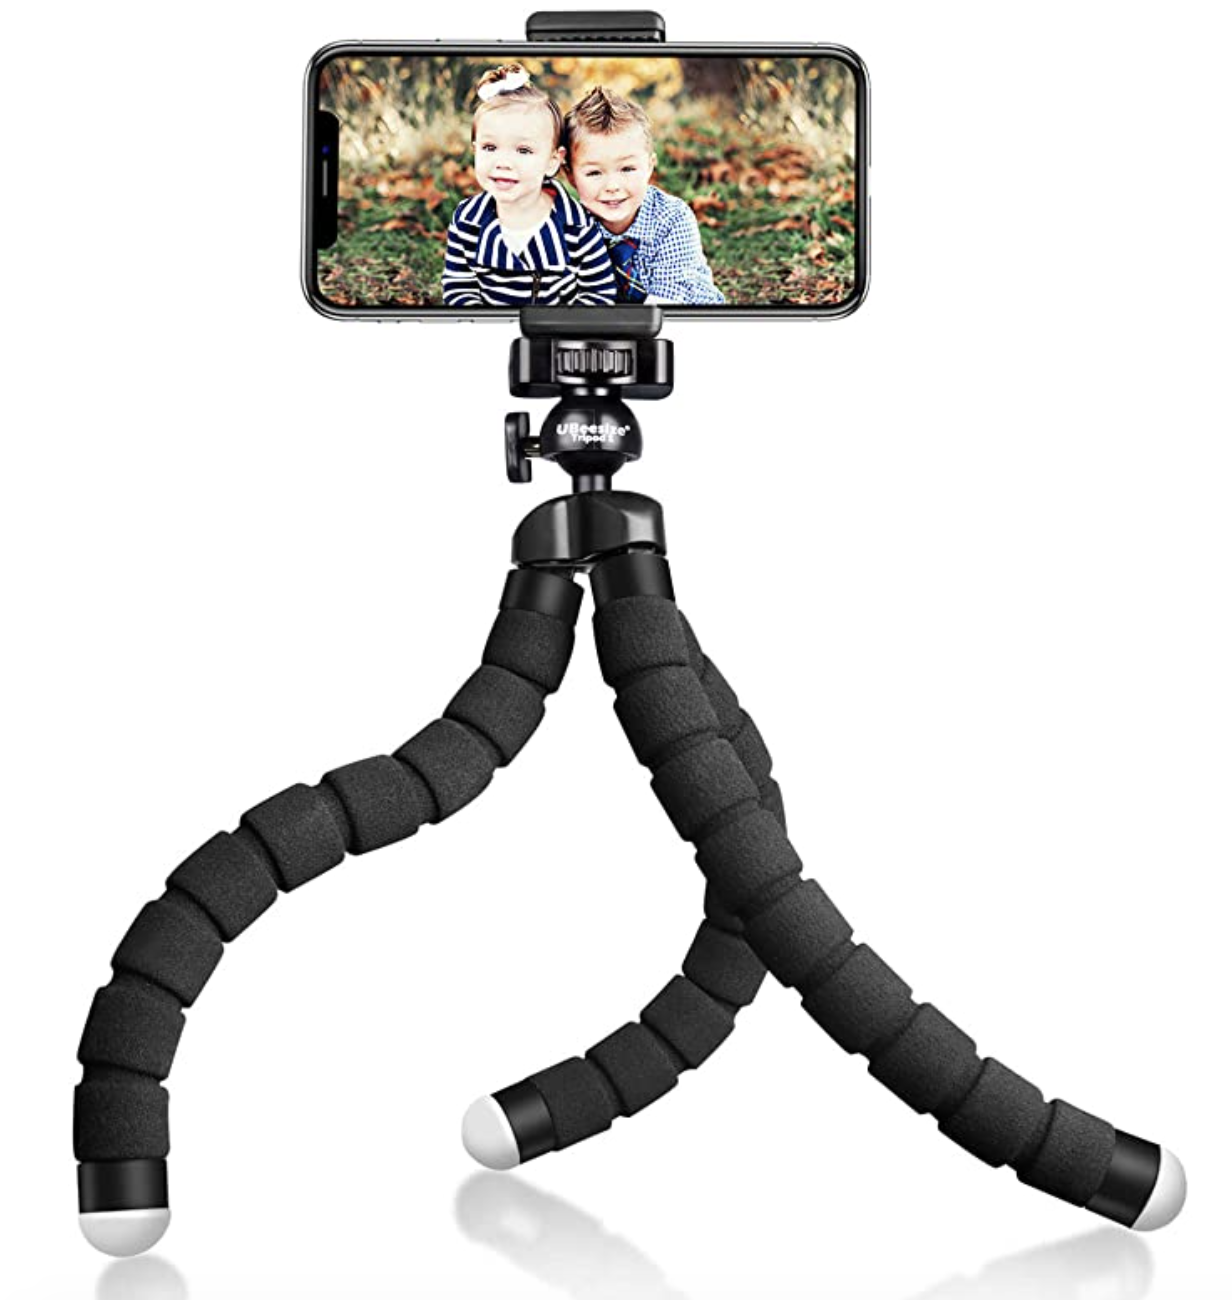 tripod for eCommerce product photography